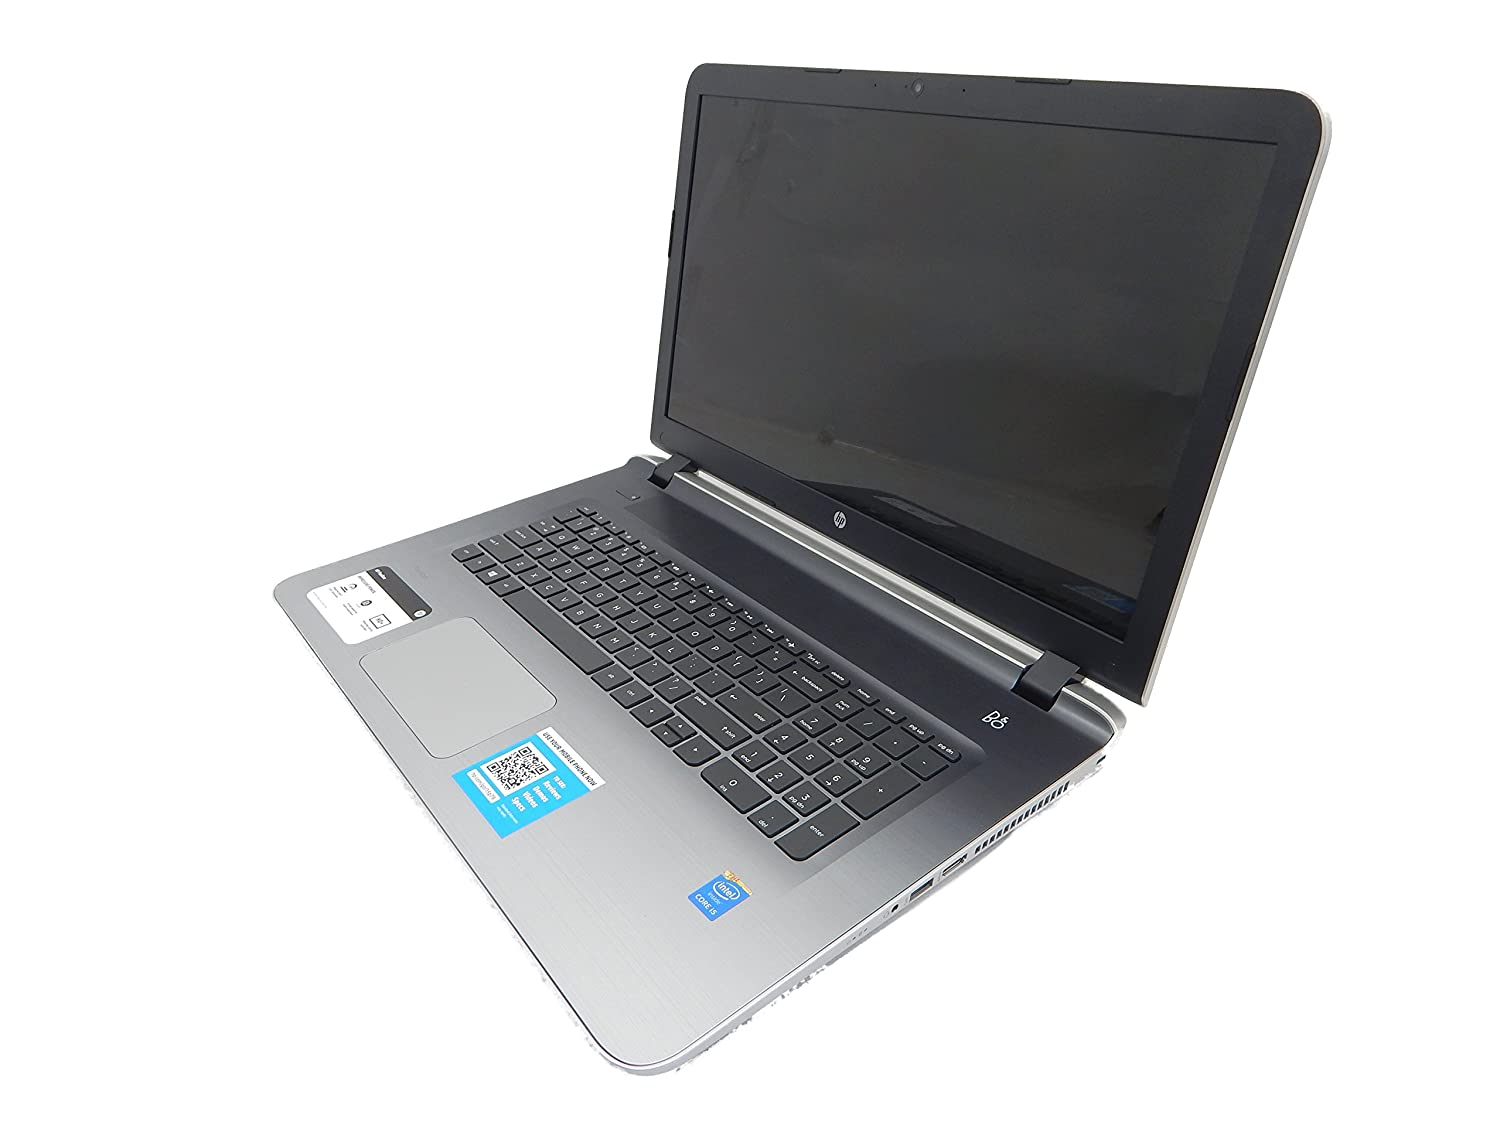 Hp Pavilion 173 Inch Hd Display Laptop 5th Gen Intel Mdisk Kabel Hdmi Ultra High Definition 4k 15 Meter G192 Core I5 5200u Processor 6gb Ddr3l Ram 1tb Hdd Windows 10 Natural Silver Computers